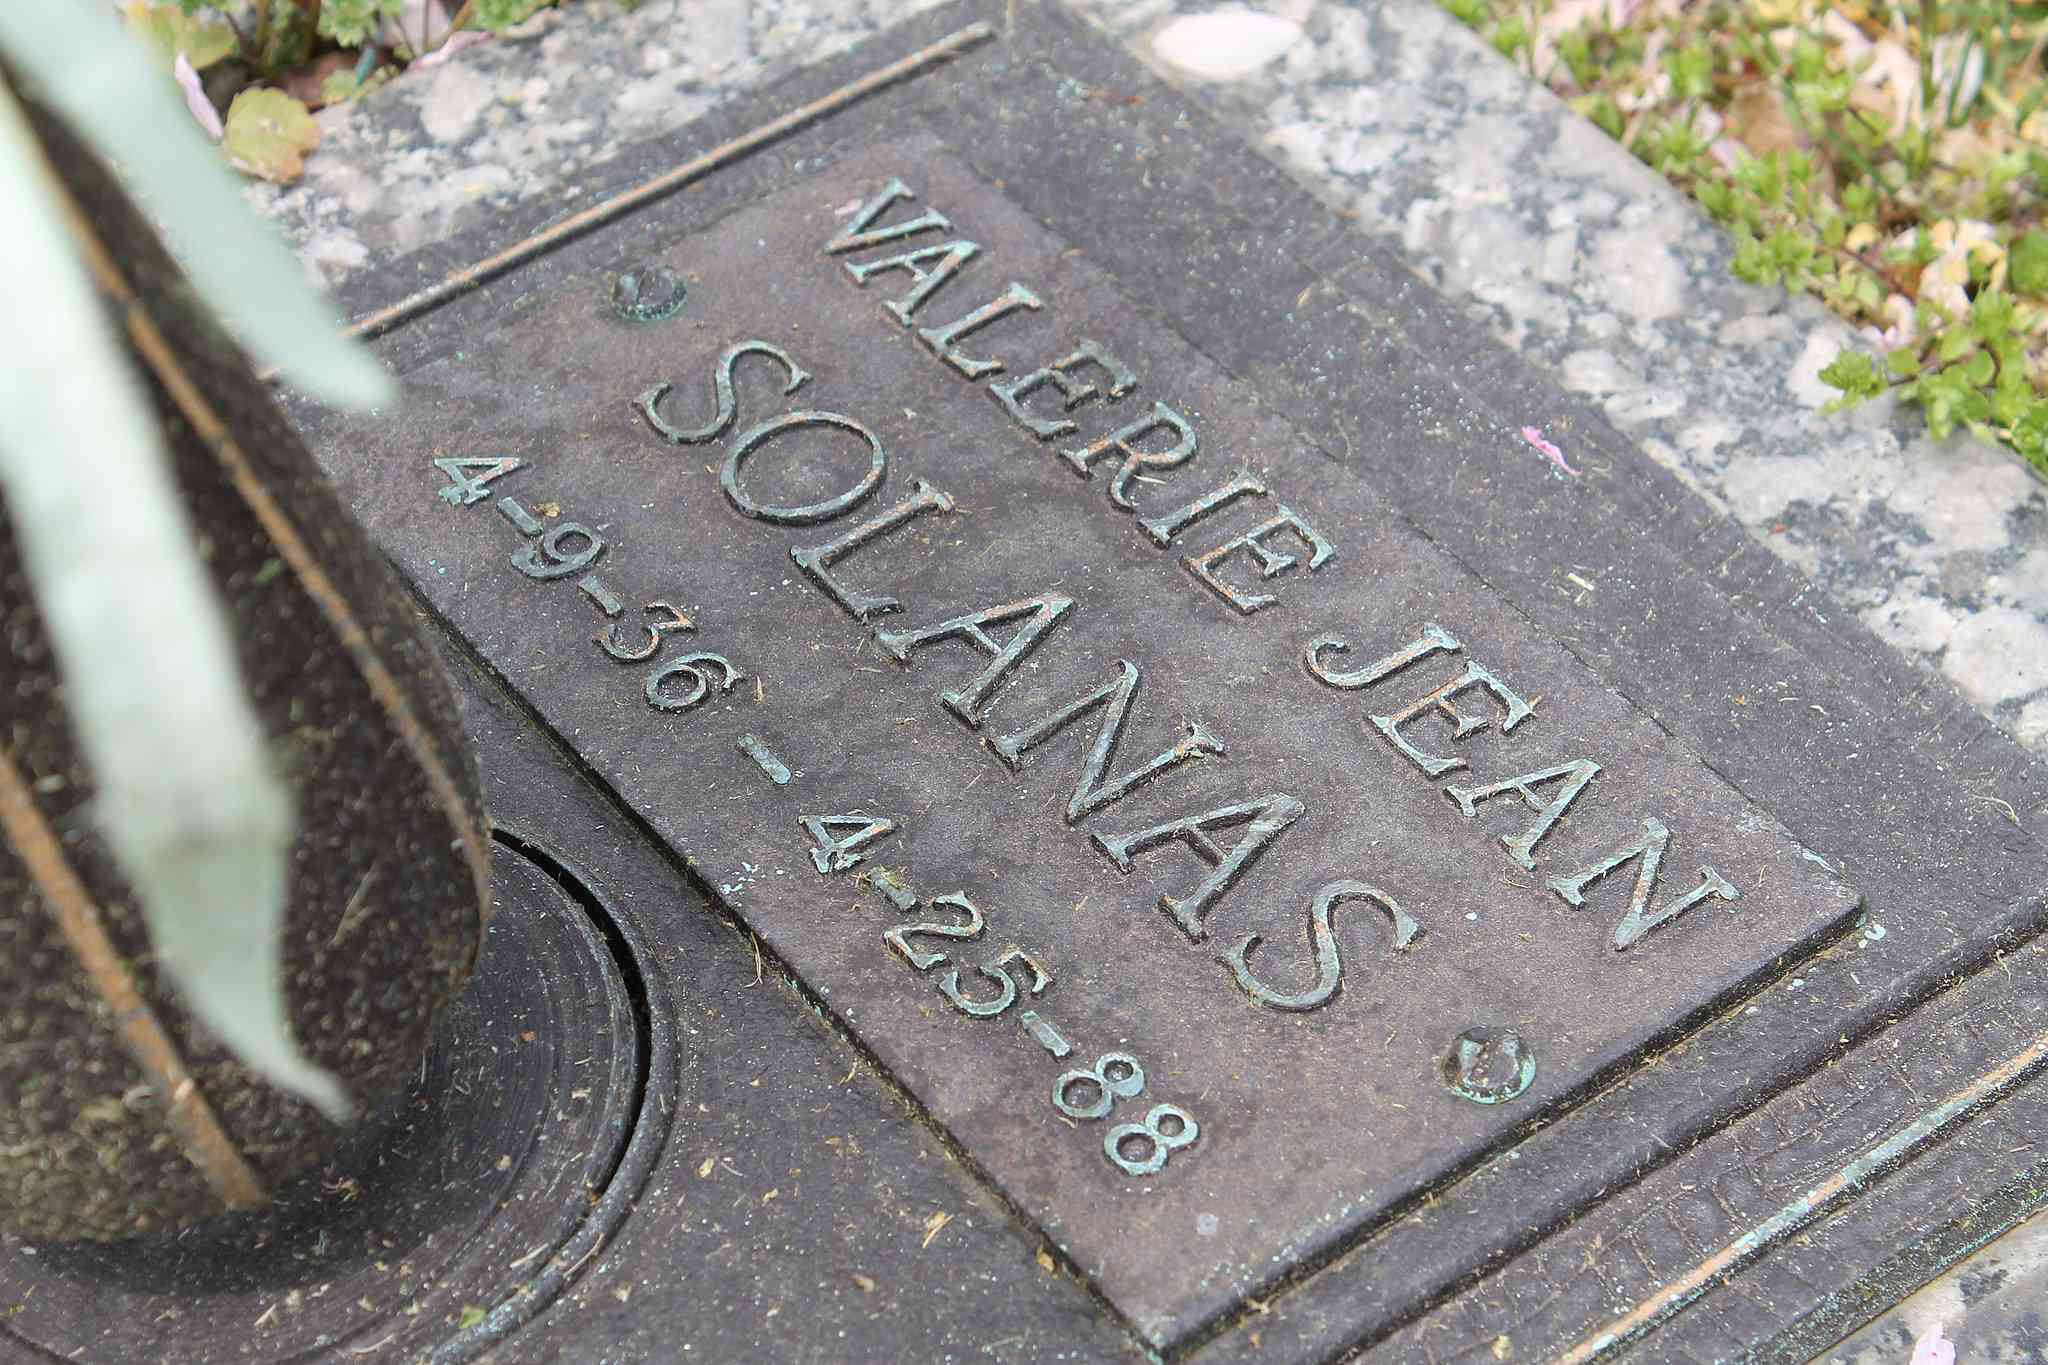 Plaque marking the grave of Valerie Solanas with her name and dates